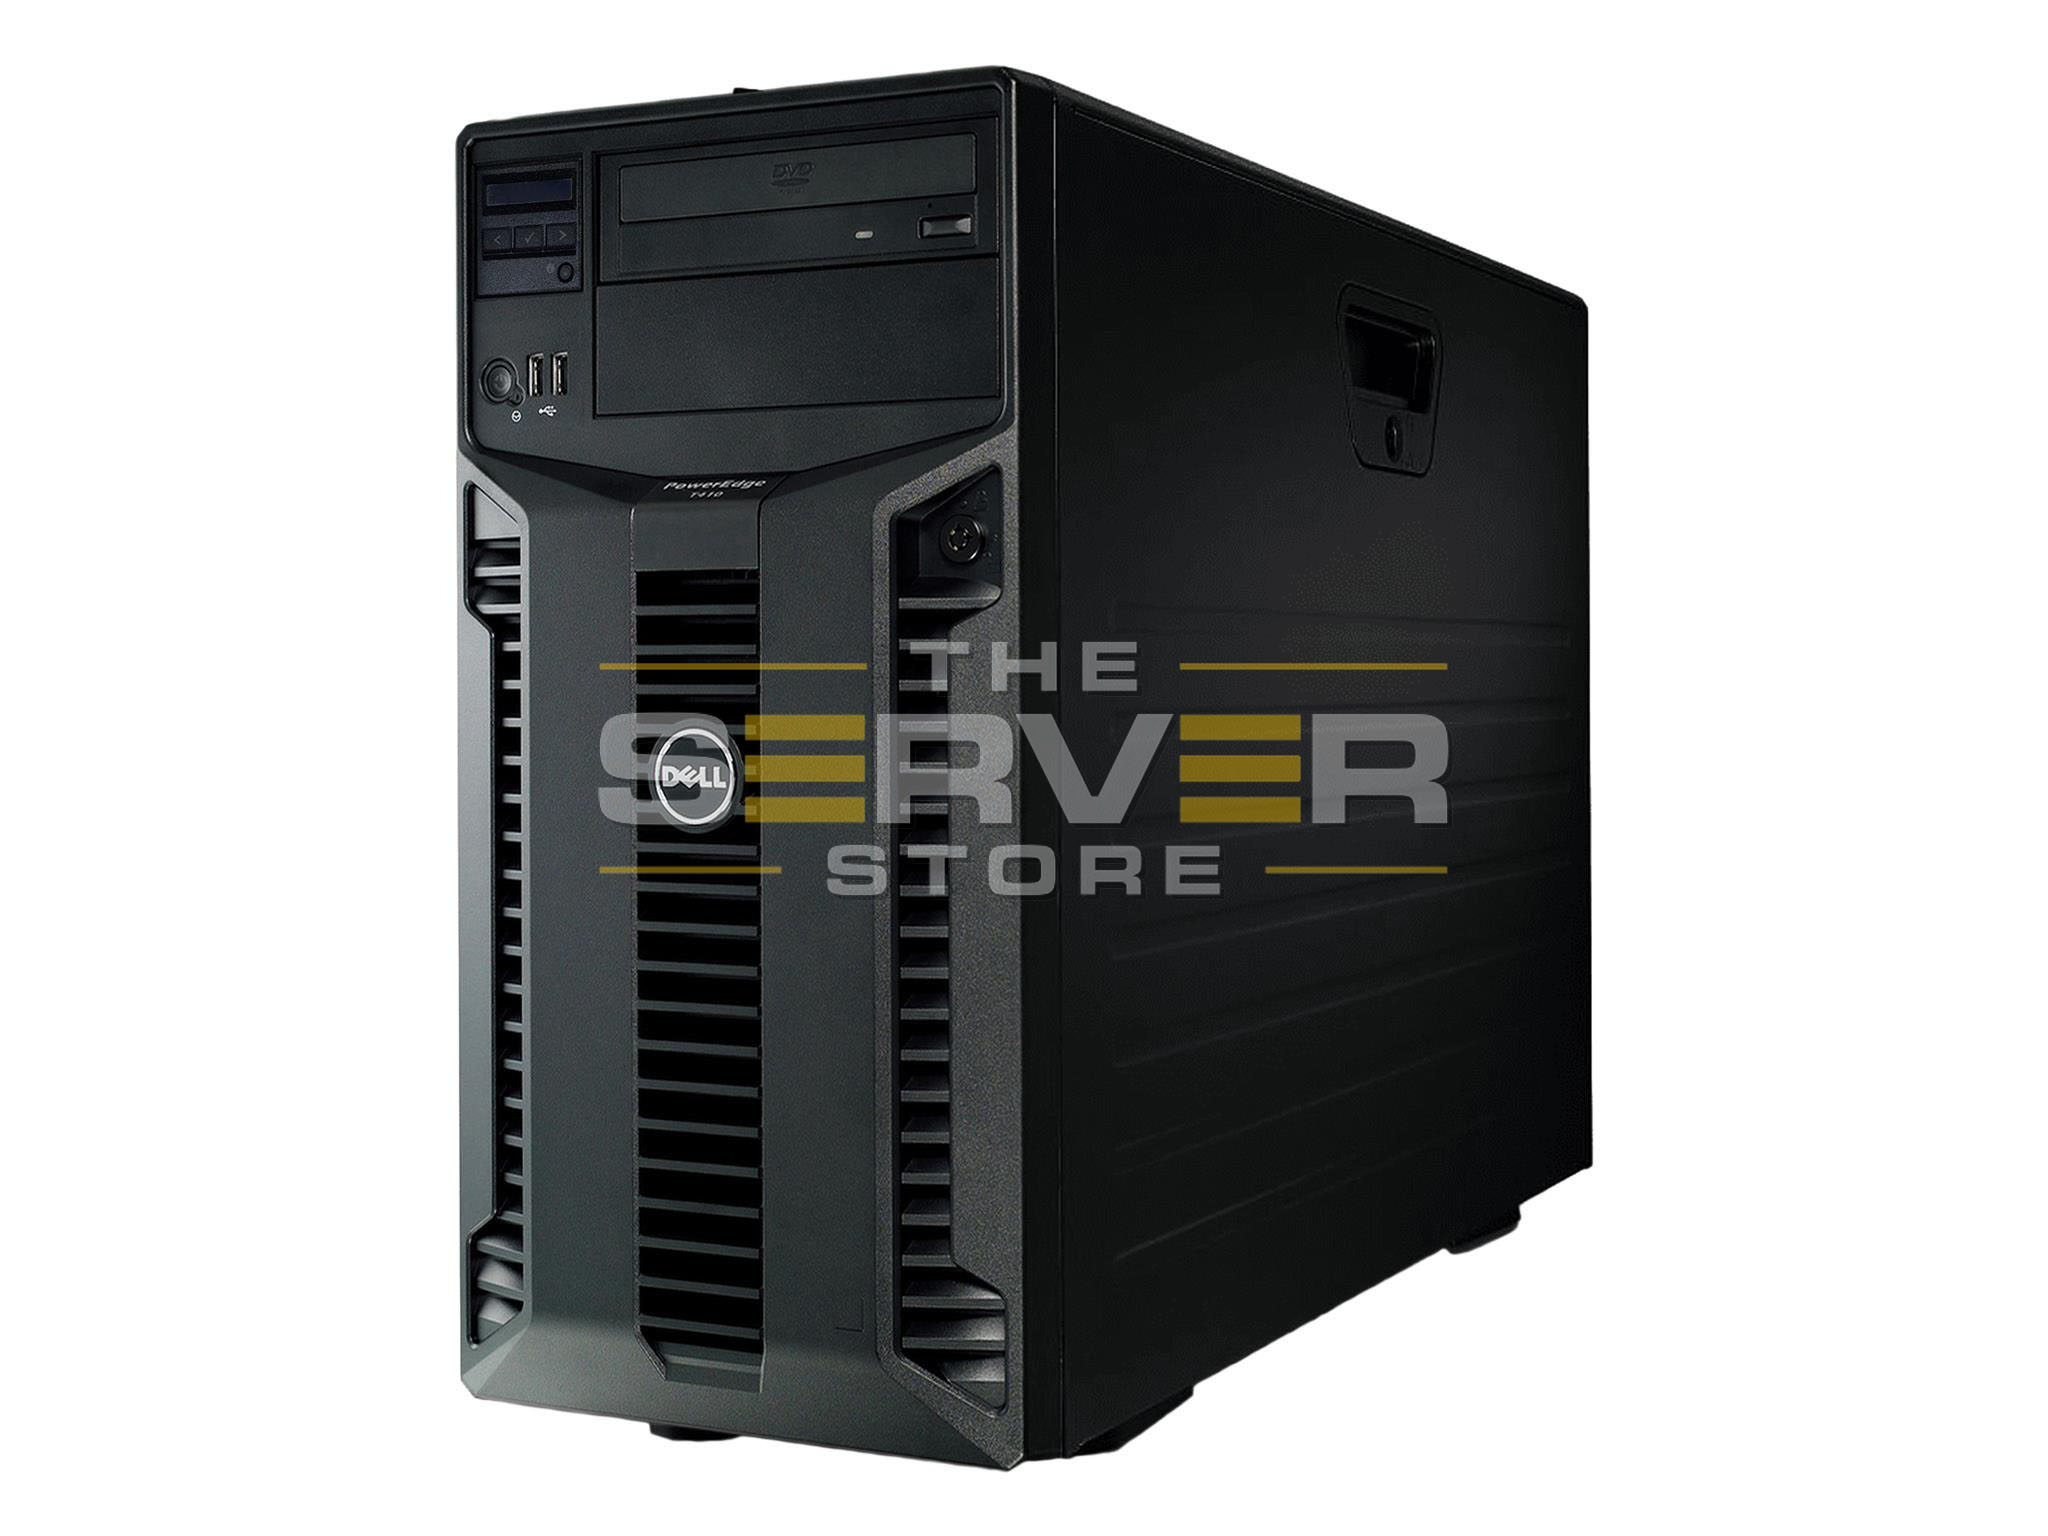 Dell Poweredge T410 Tower Server